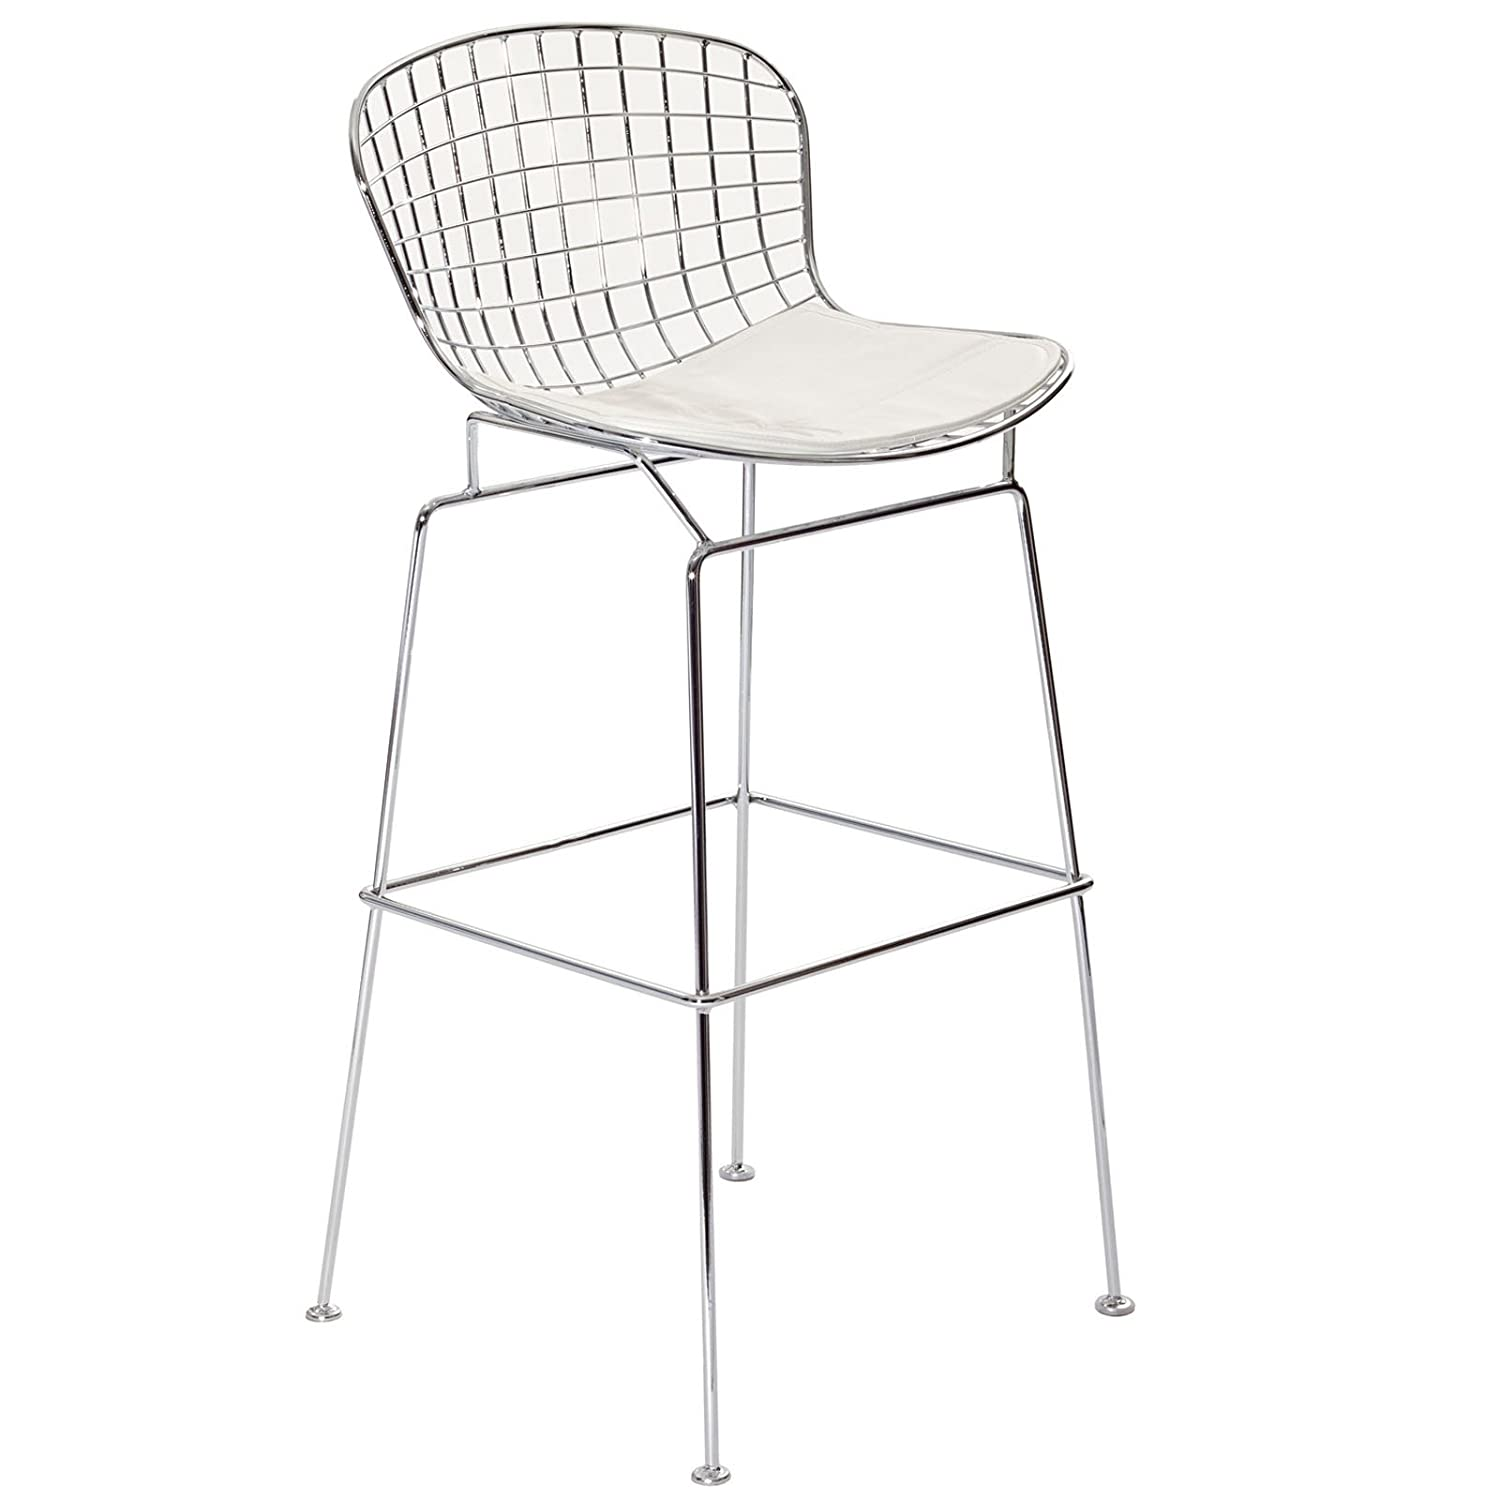 Amazon Modway Bertoia Style Stool with White Seat Cushion